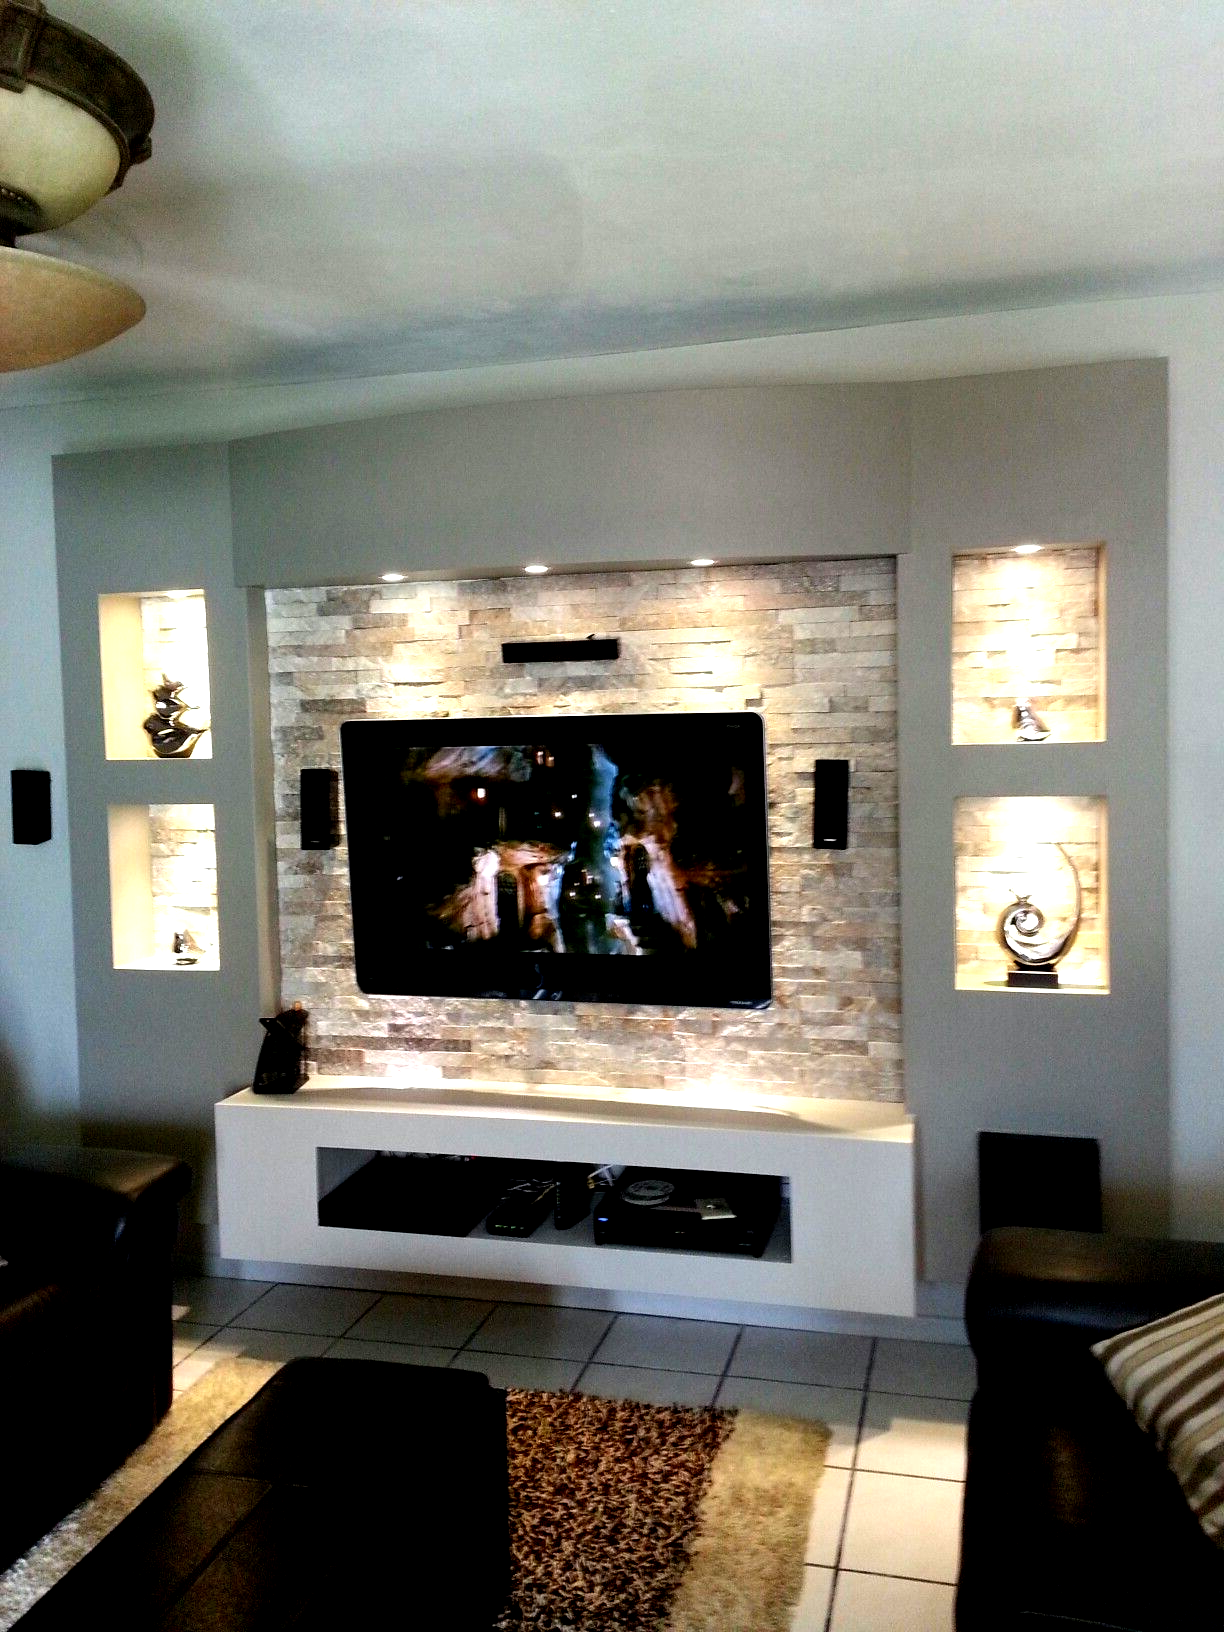 Gorgeous Feature Wall Ideas Living Room With Tv At Times You Dont Need To Decorate The Fu Feature Wall Living Room Living Room Decor Modern Lamps Living Room